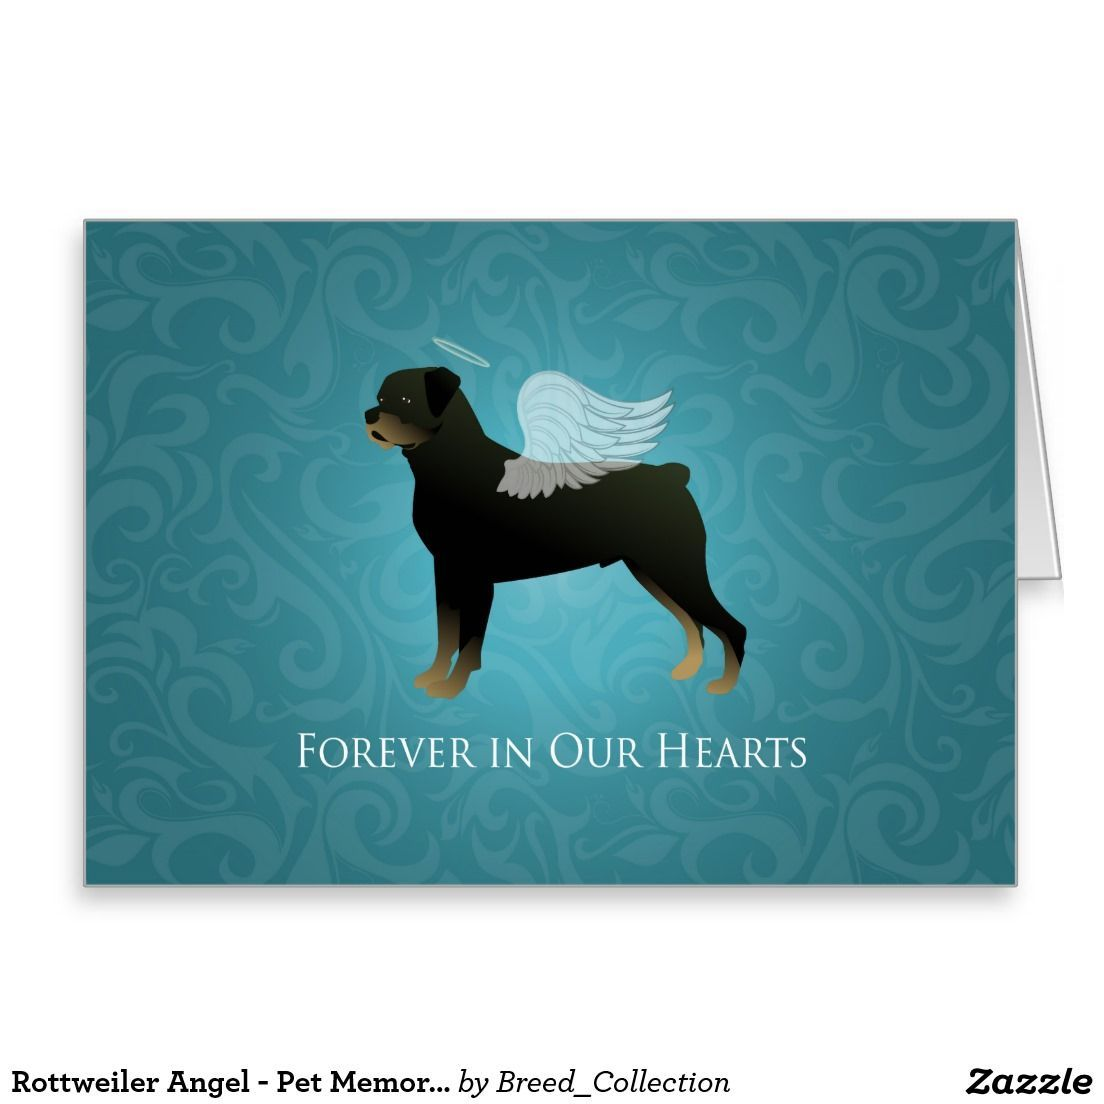 Rottweiler Angel Pet Memorial Design Greeting Card With Images